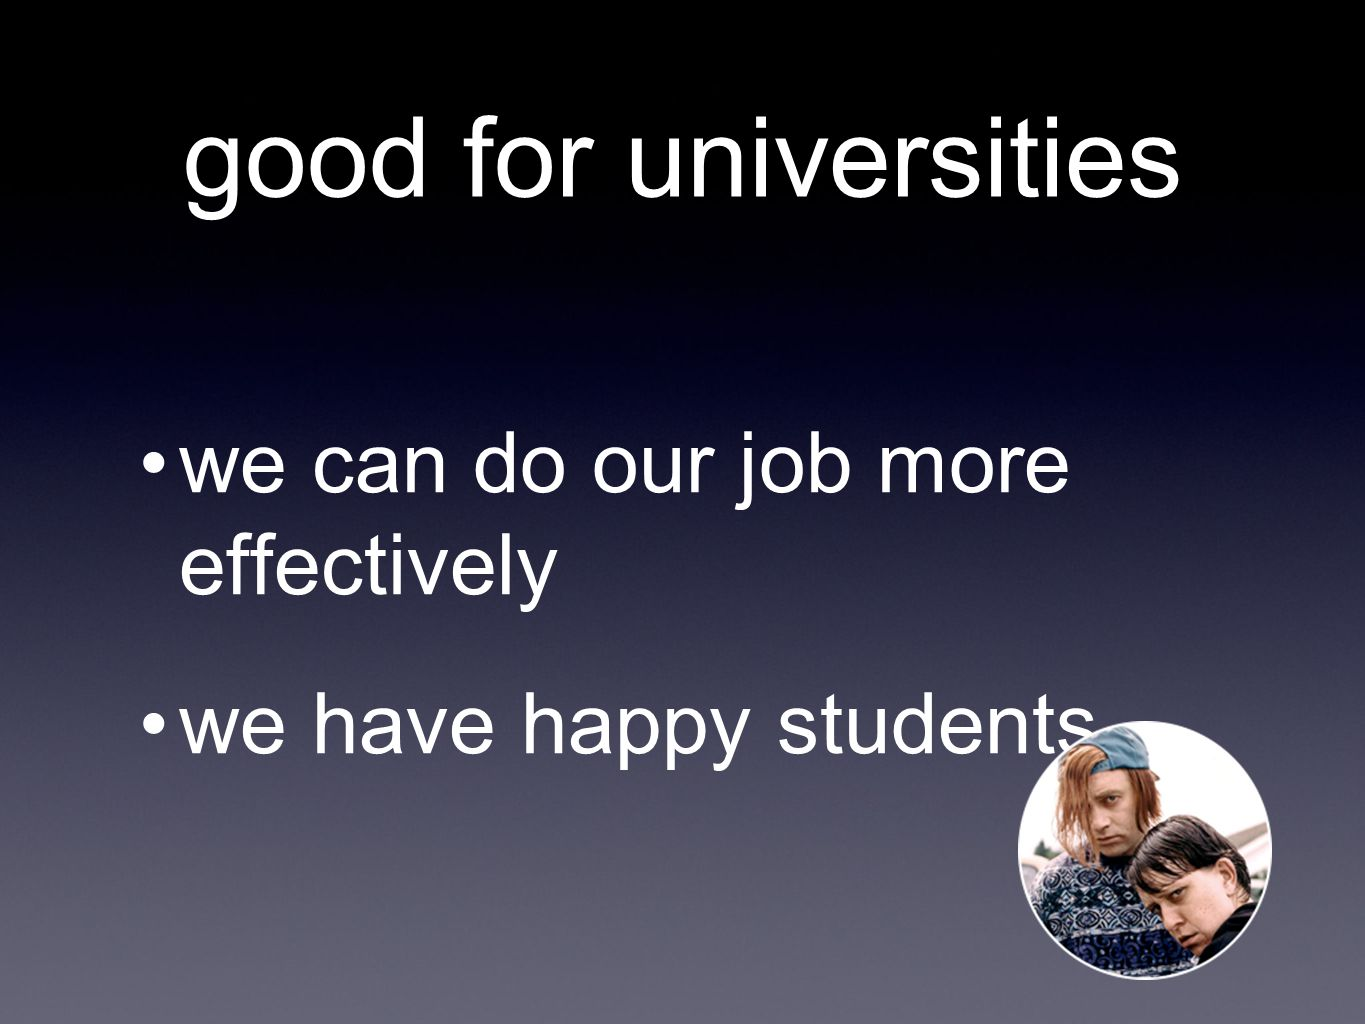 good for universities we can do our job more effectively we have happy students